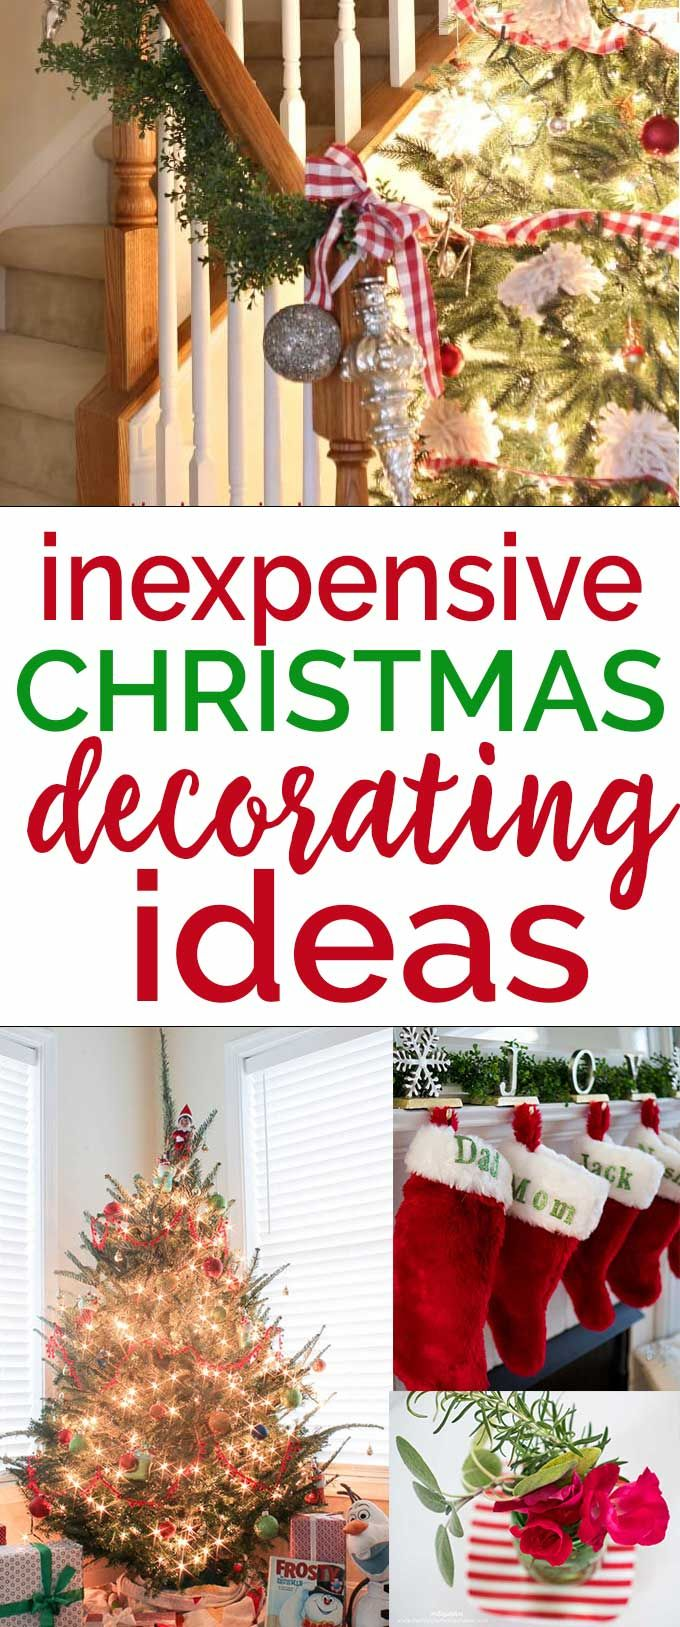 Holiday Decorating Doesn T Have To Cost A Lot Of Money Use These Inexpensive Christmas Decorating Id Inexpensive Christmas Christmas Decorations Holiday Decor